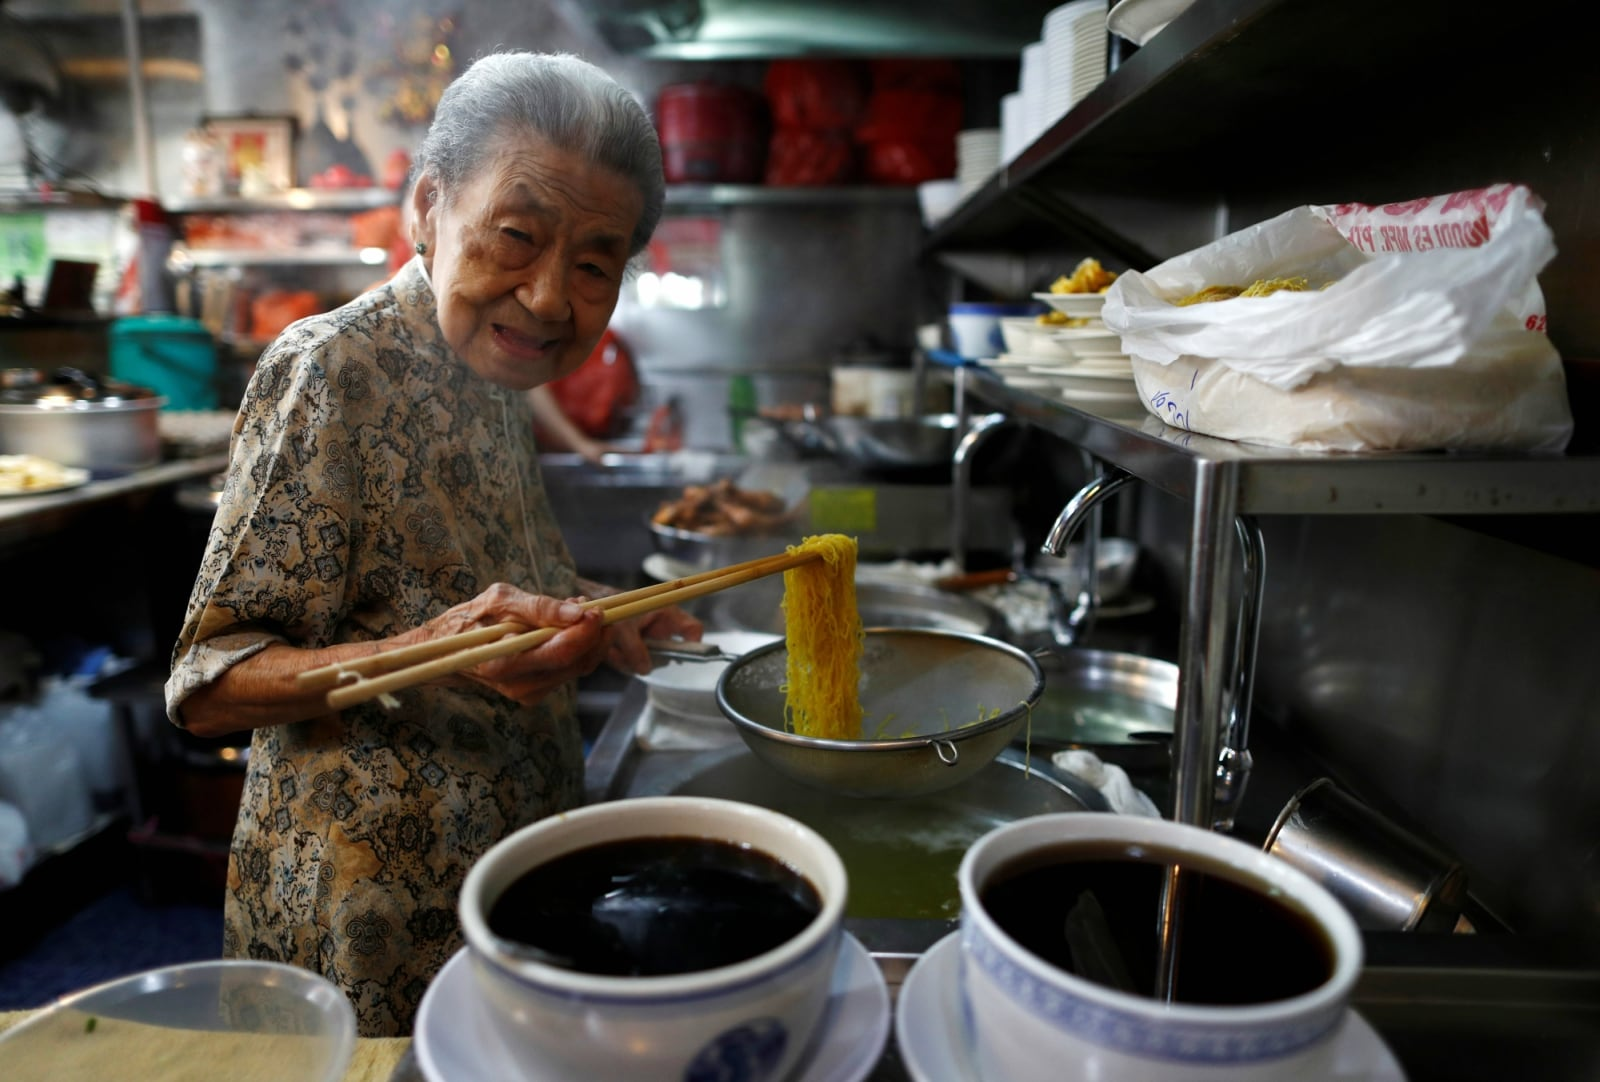 Hawker Leong Yuet Meng, 90, of Nam Seng Noodle House, poses as she cooks noodles at her shop in Singapore February 22, 2019. REUTERS/Edgar Su